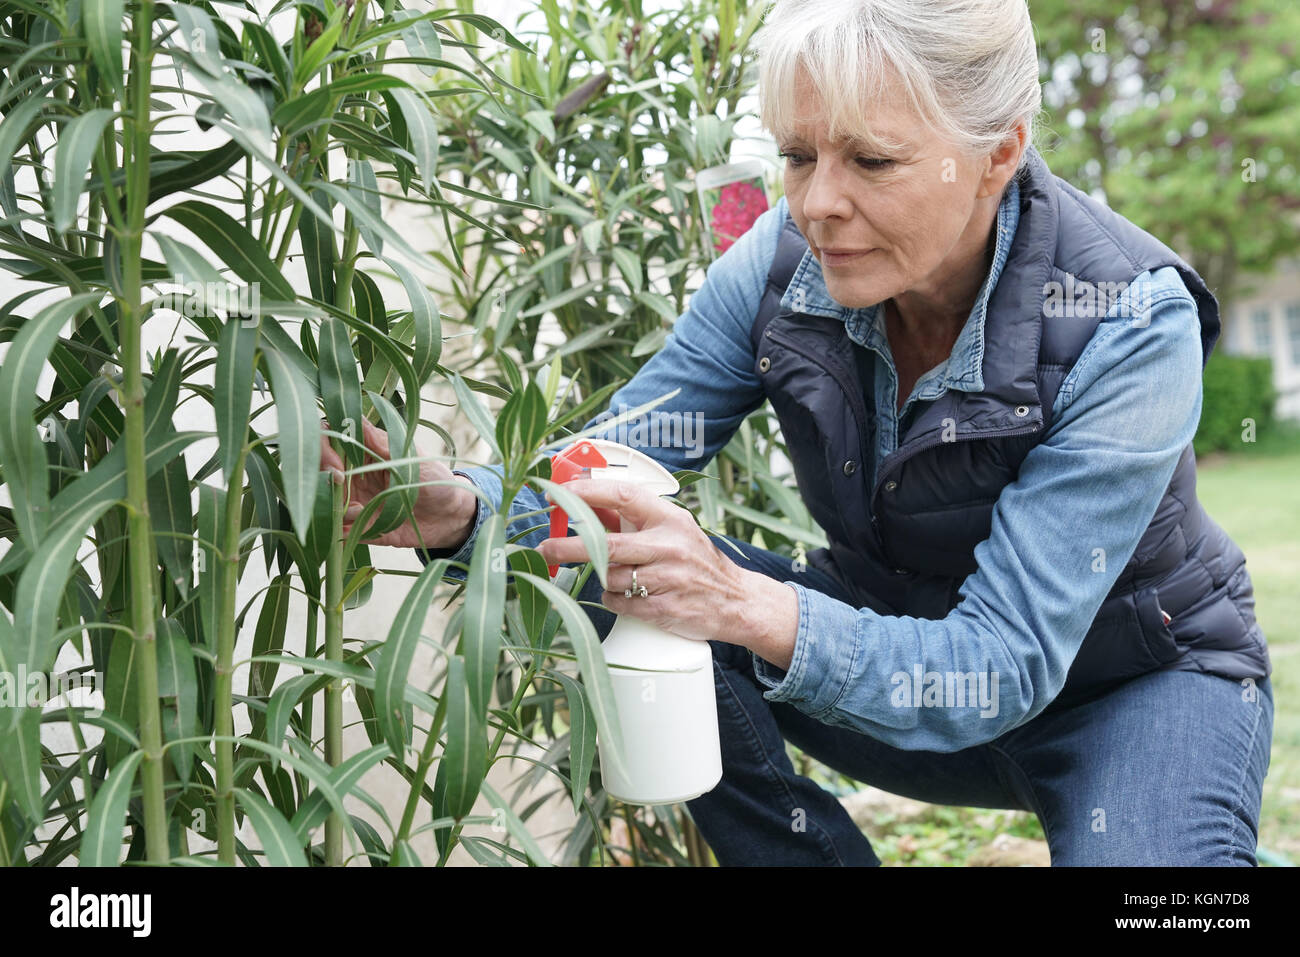 Senior woman in garden spraying insecticide over plants - Stock Image